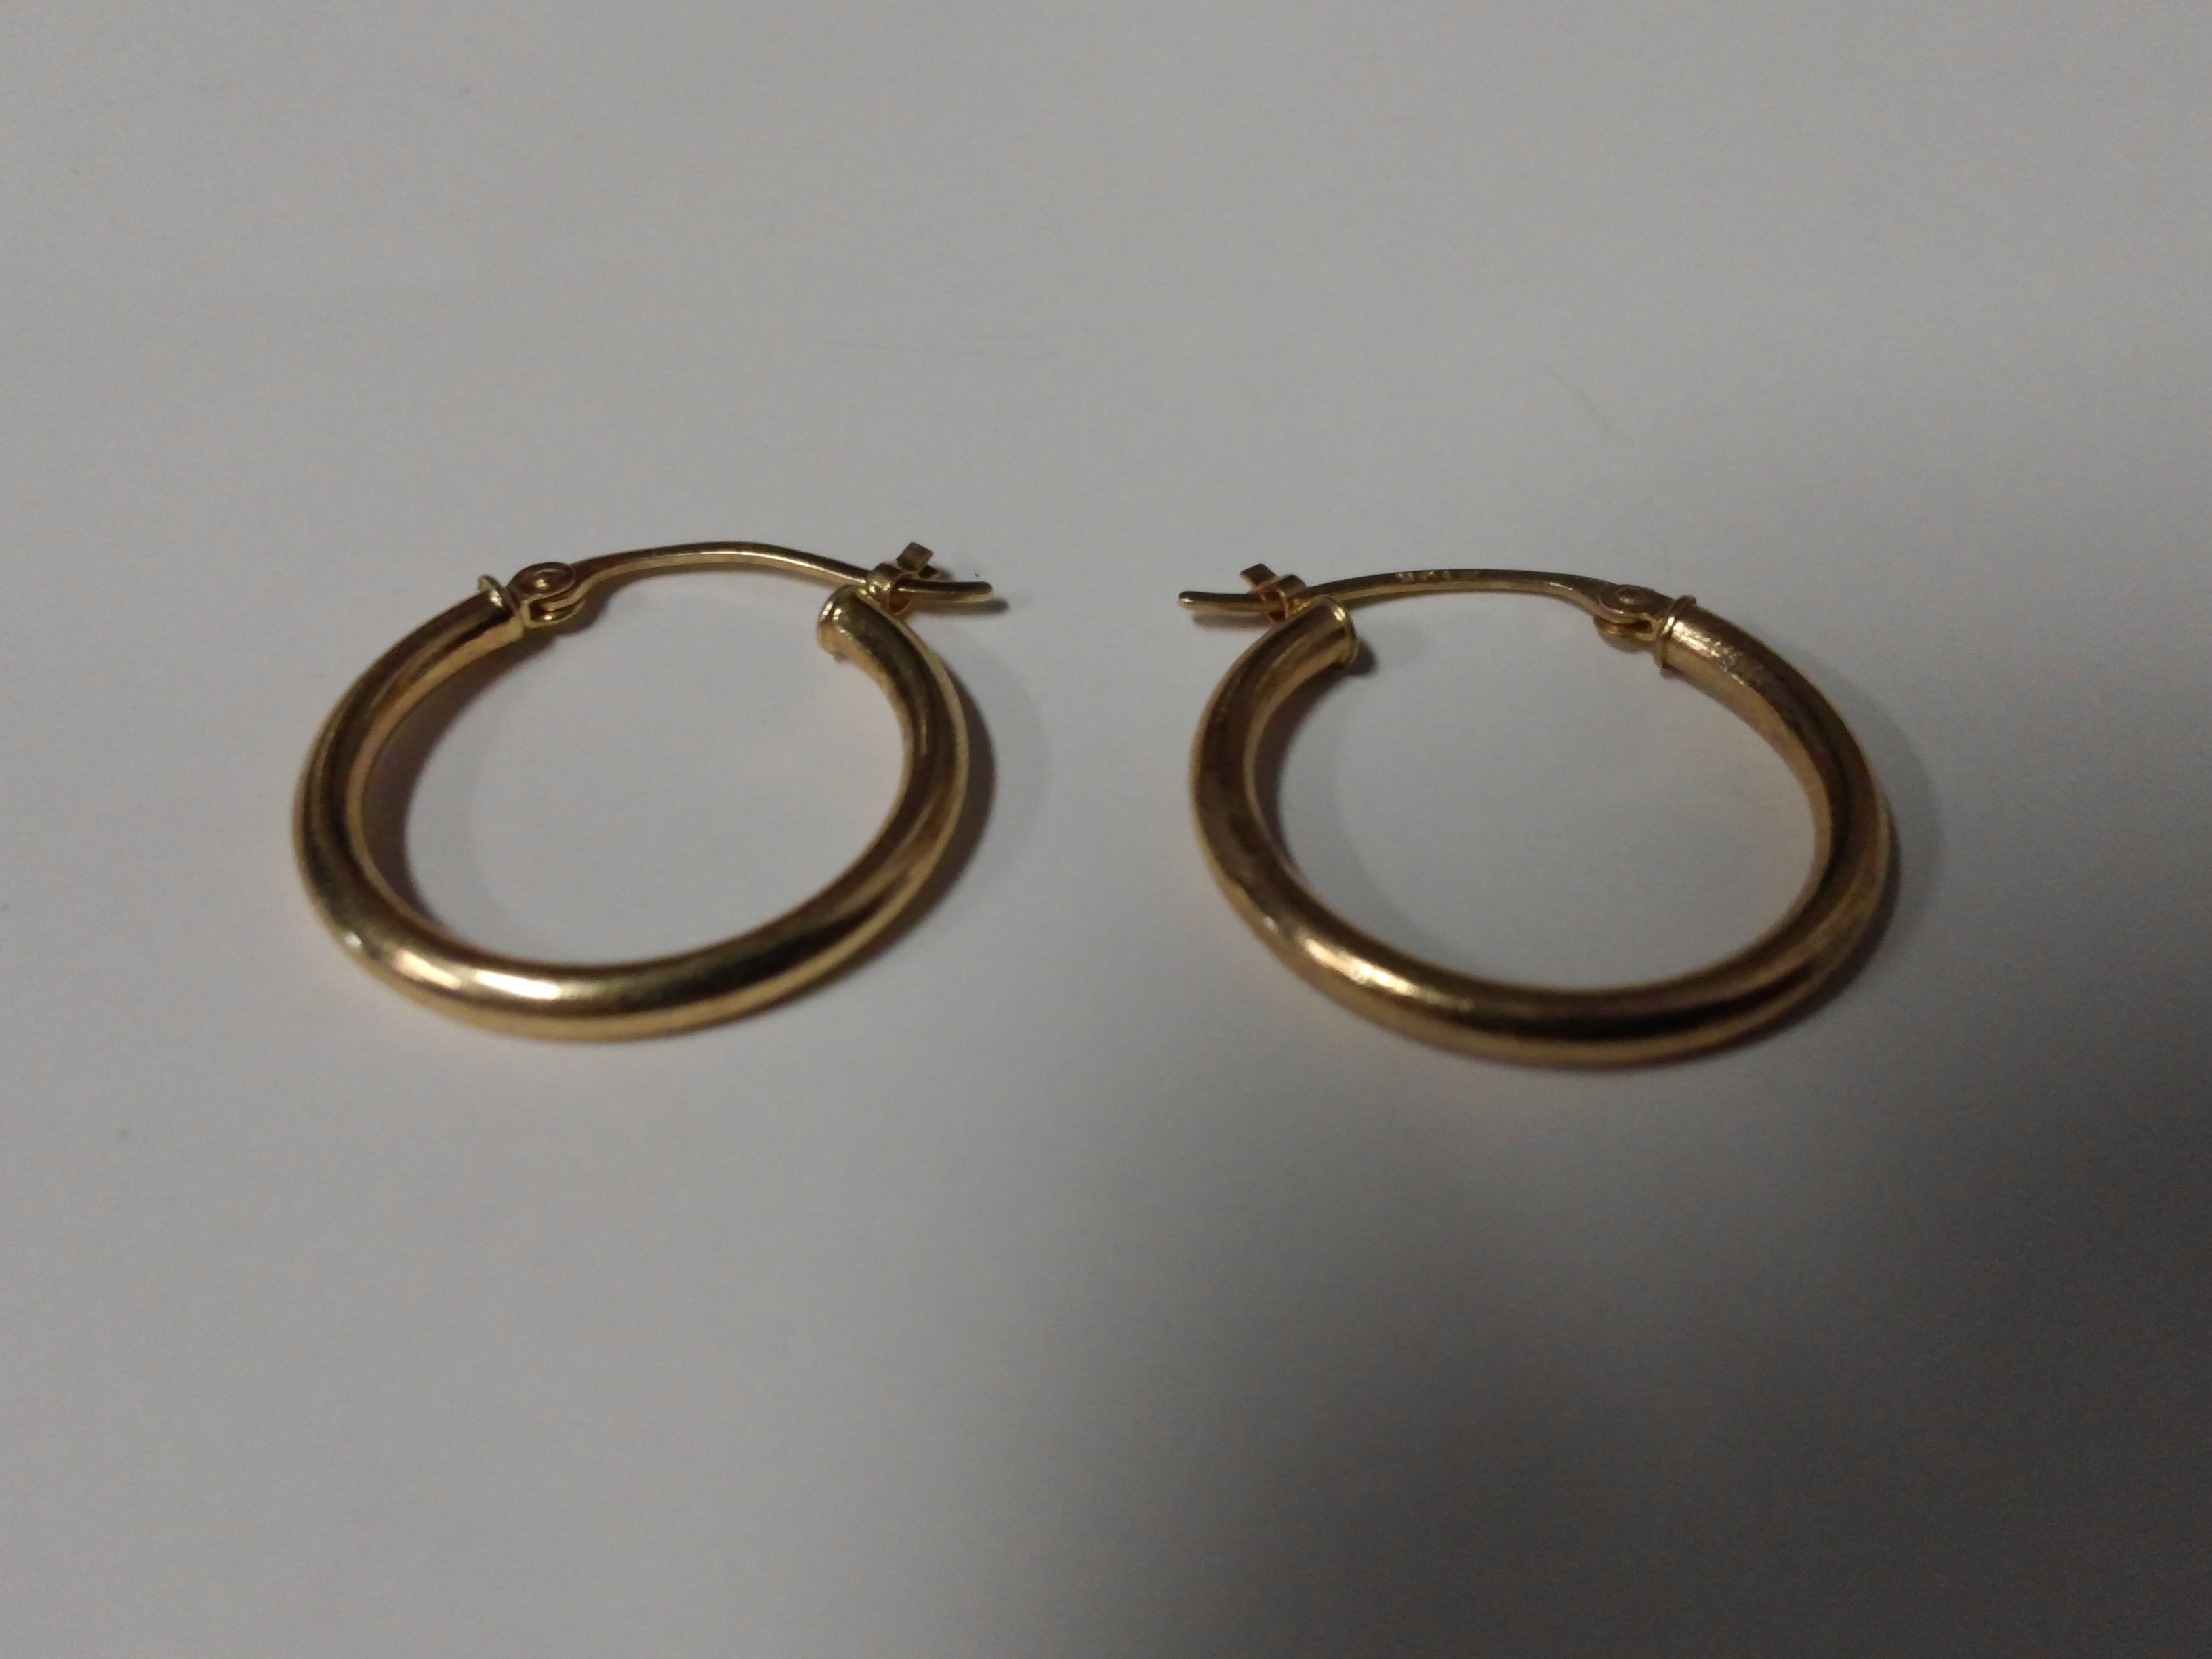 A set of Solid 10k Gold 3/4 inch Hoop Earrings